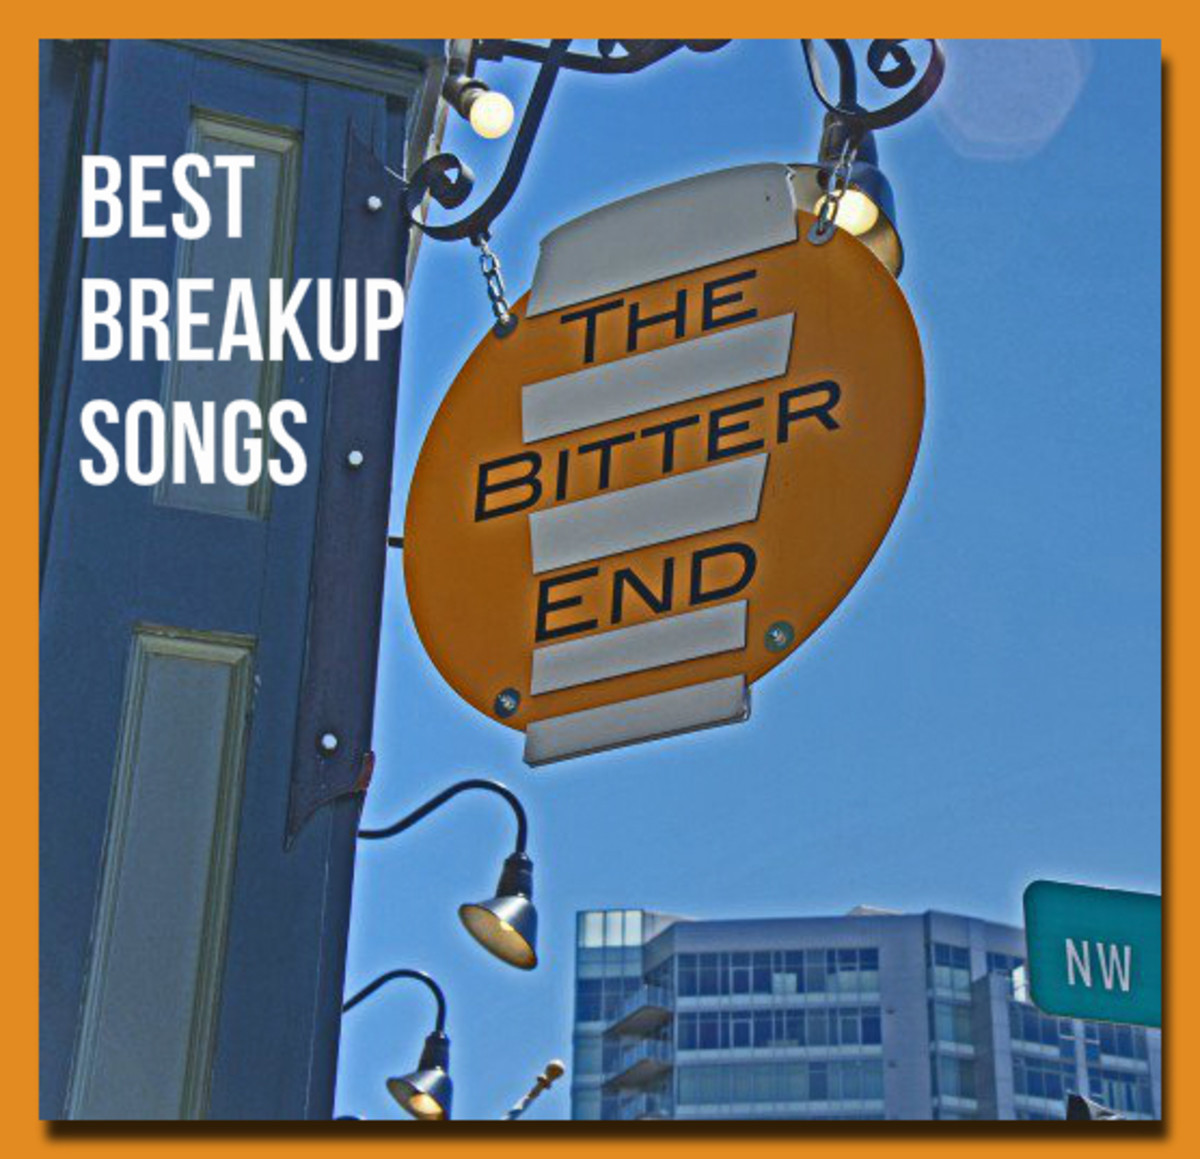 125 Songs About Breakups, Heartbreak, and Divorce